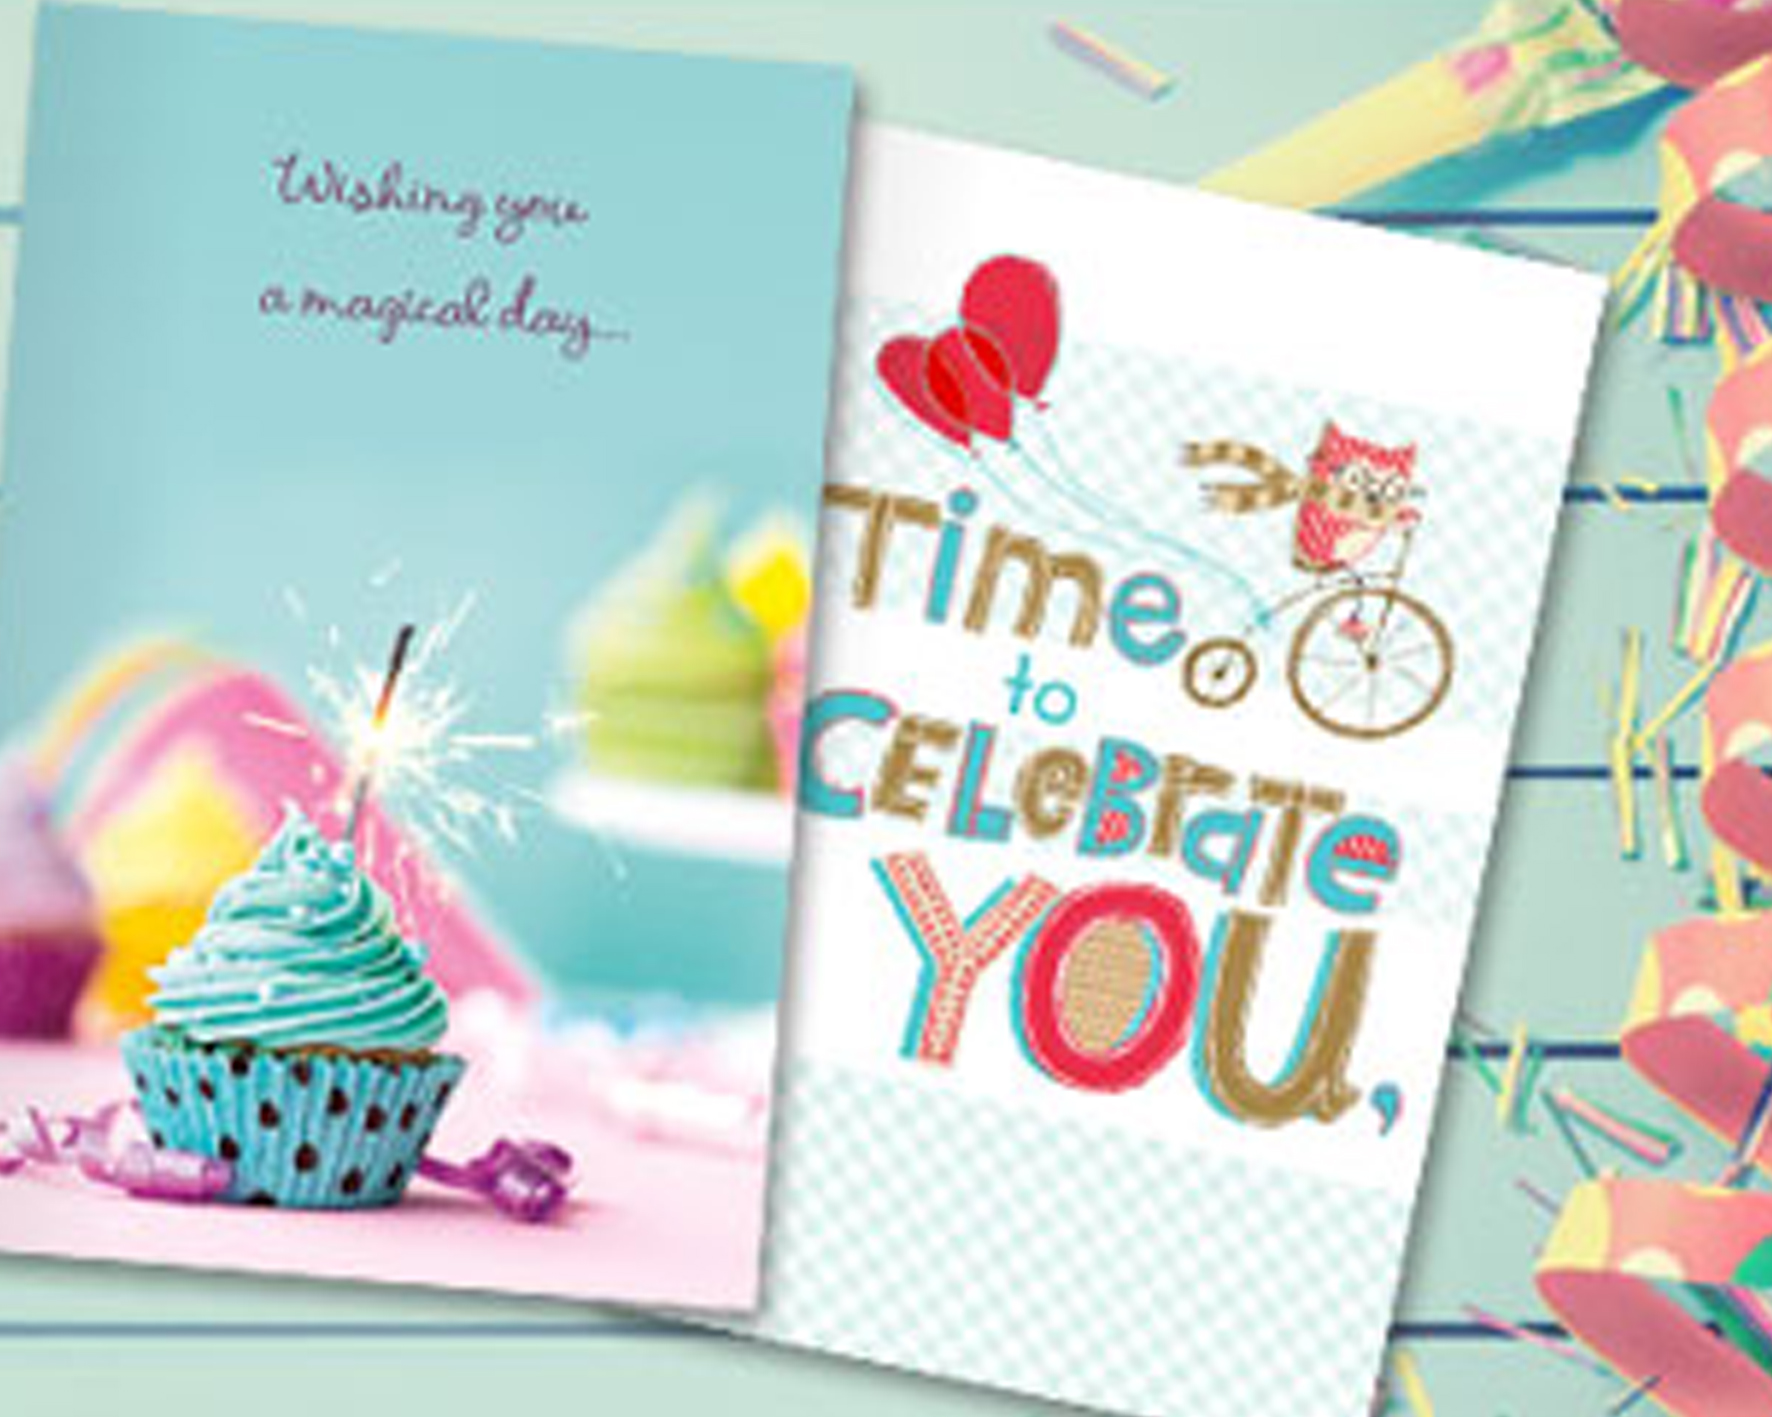 American greetings shop greeting cards ecards printable cards image representing printable birthday cards browse printables m4hsunfo